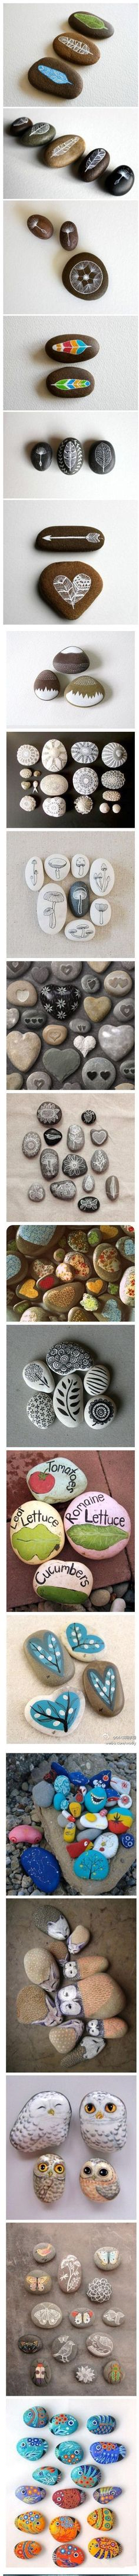 Pebble Art Creative Designs by batjas88